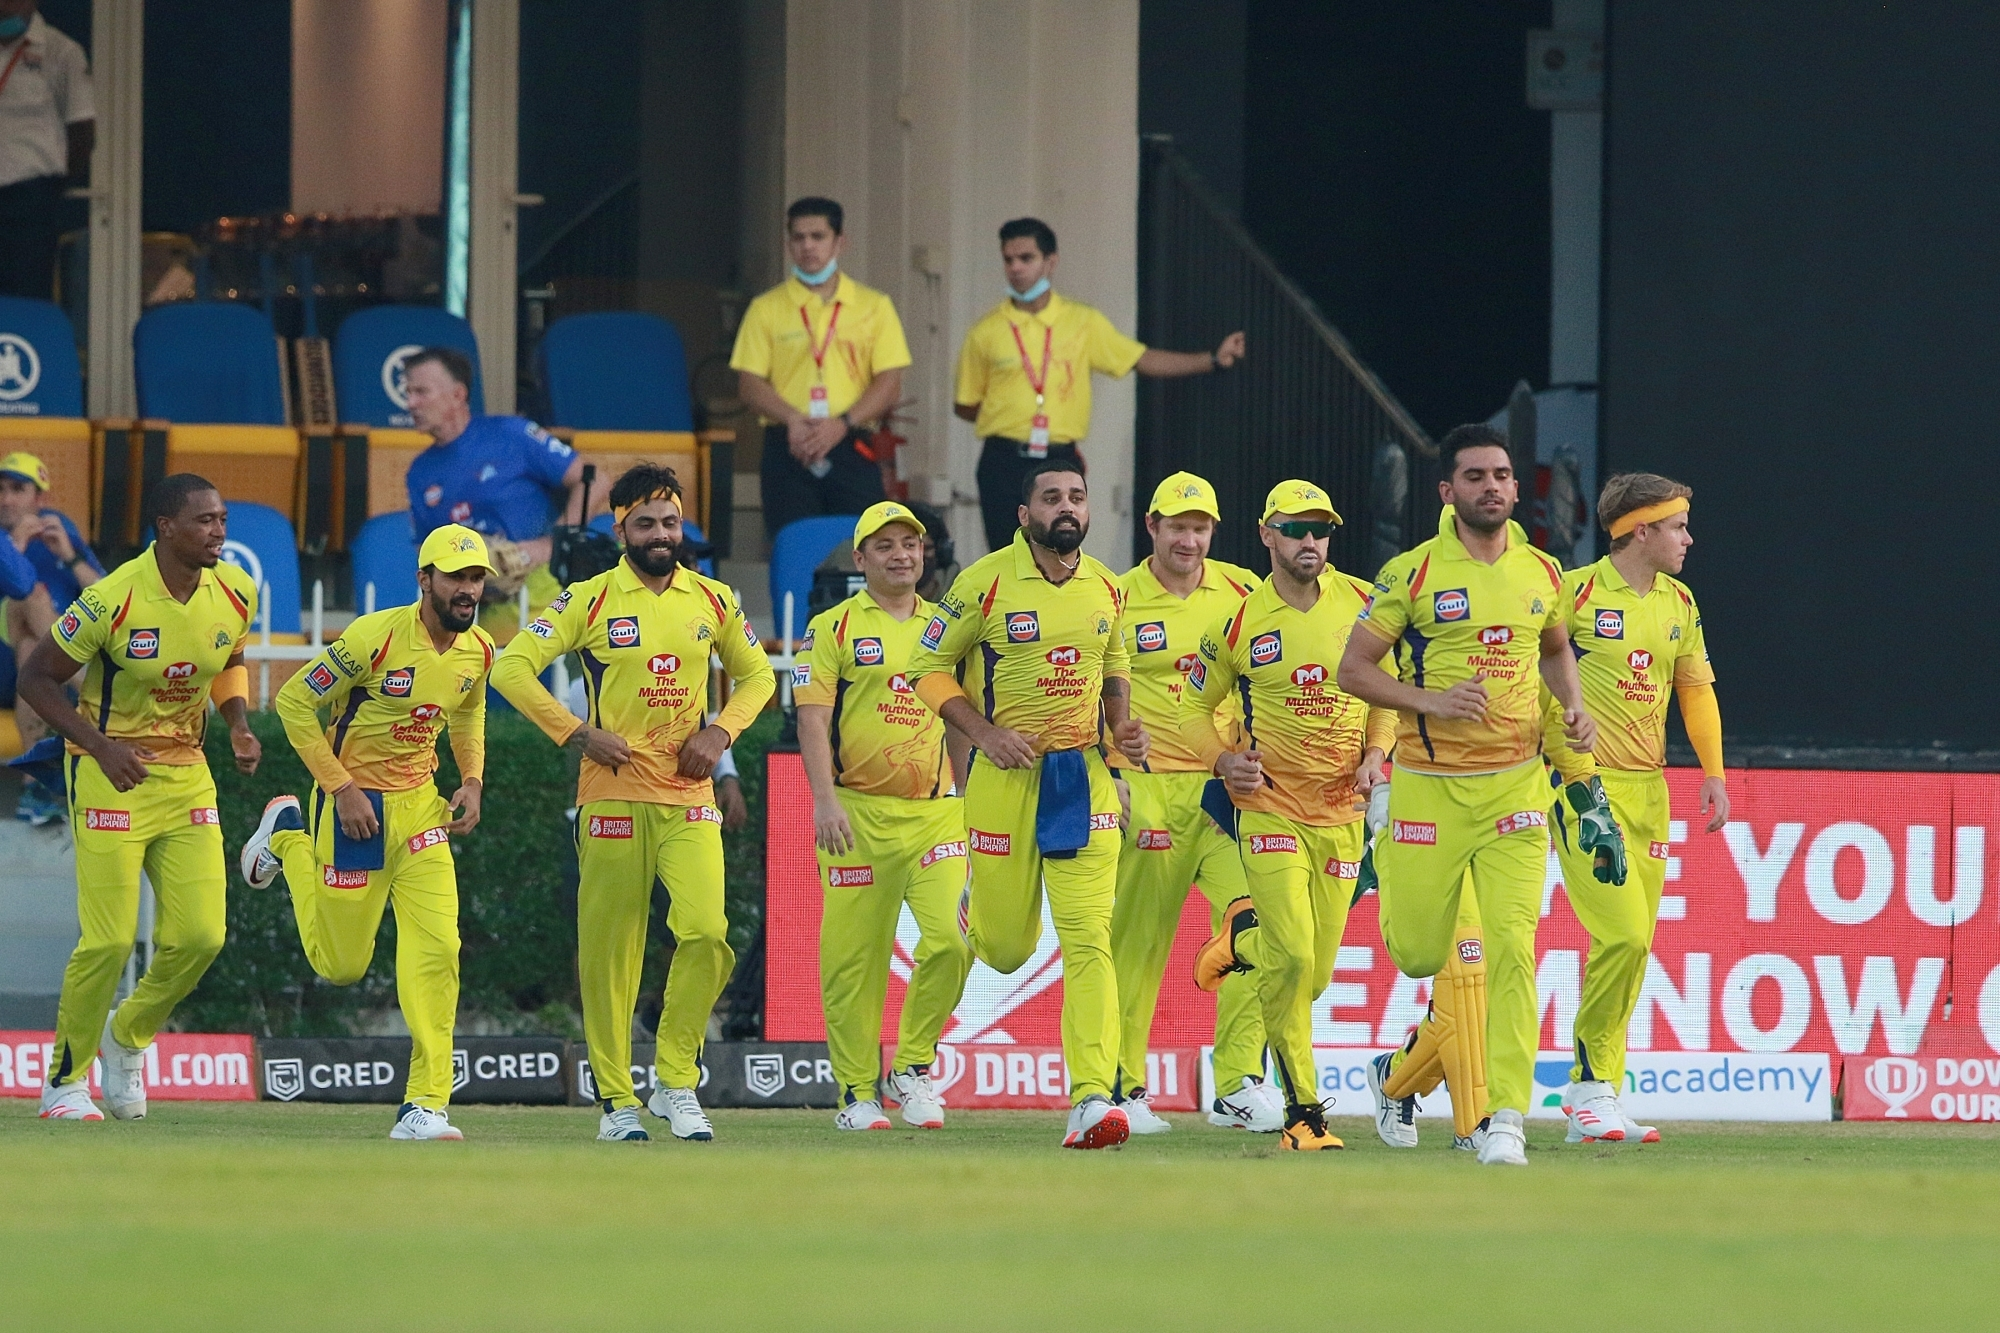 The CSK team failed to make it into the playoff for the first time ever | BCCI/IPL